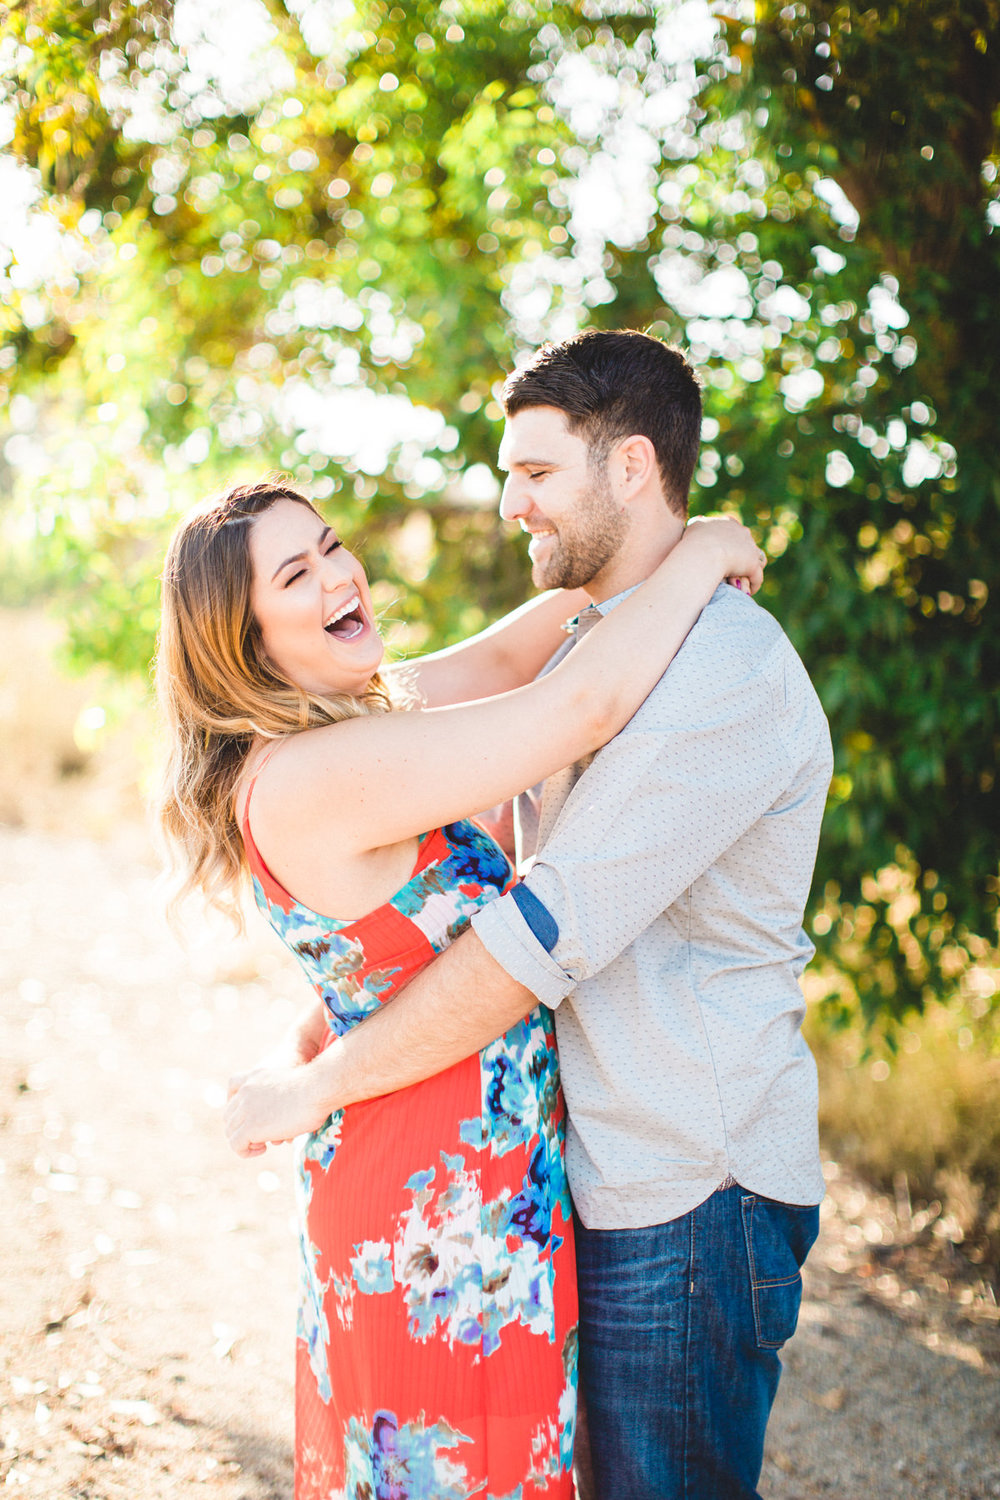 the-light-and-glass-wedding-engagement-photography-20160712-18-30-5.jpg